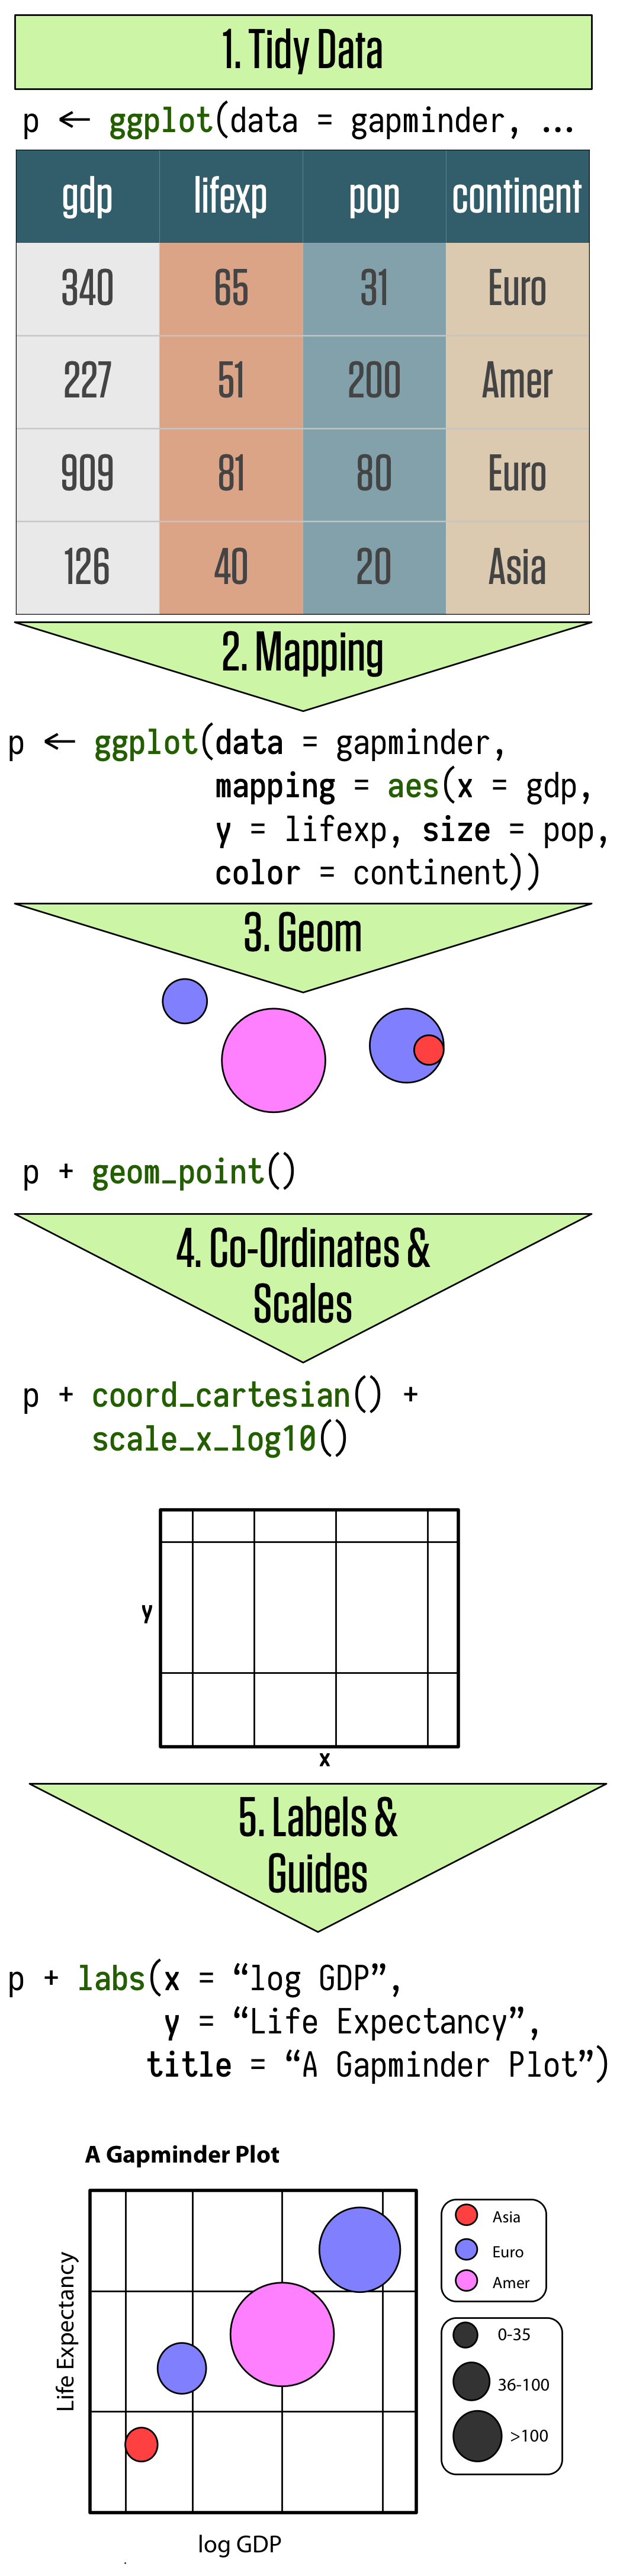 The main elements of ggplot's grammar of graphics. This chapter goes through these steps in detail.